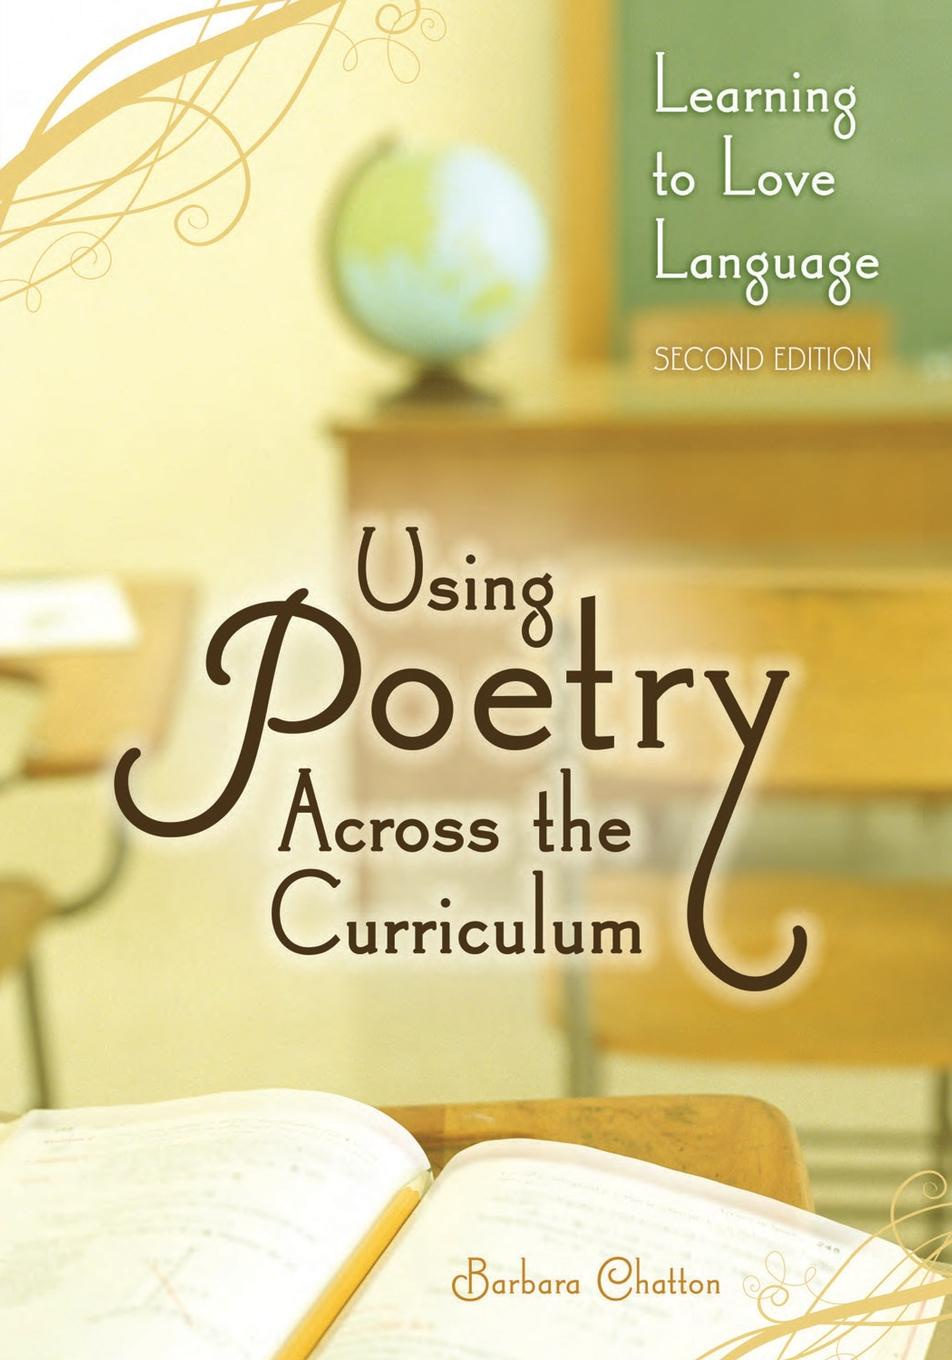 Barbara Chatton Using Poetry Across the Curriculum. Learning to Love Language learning to live the love we promise